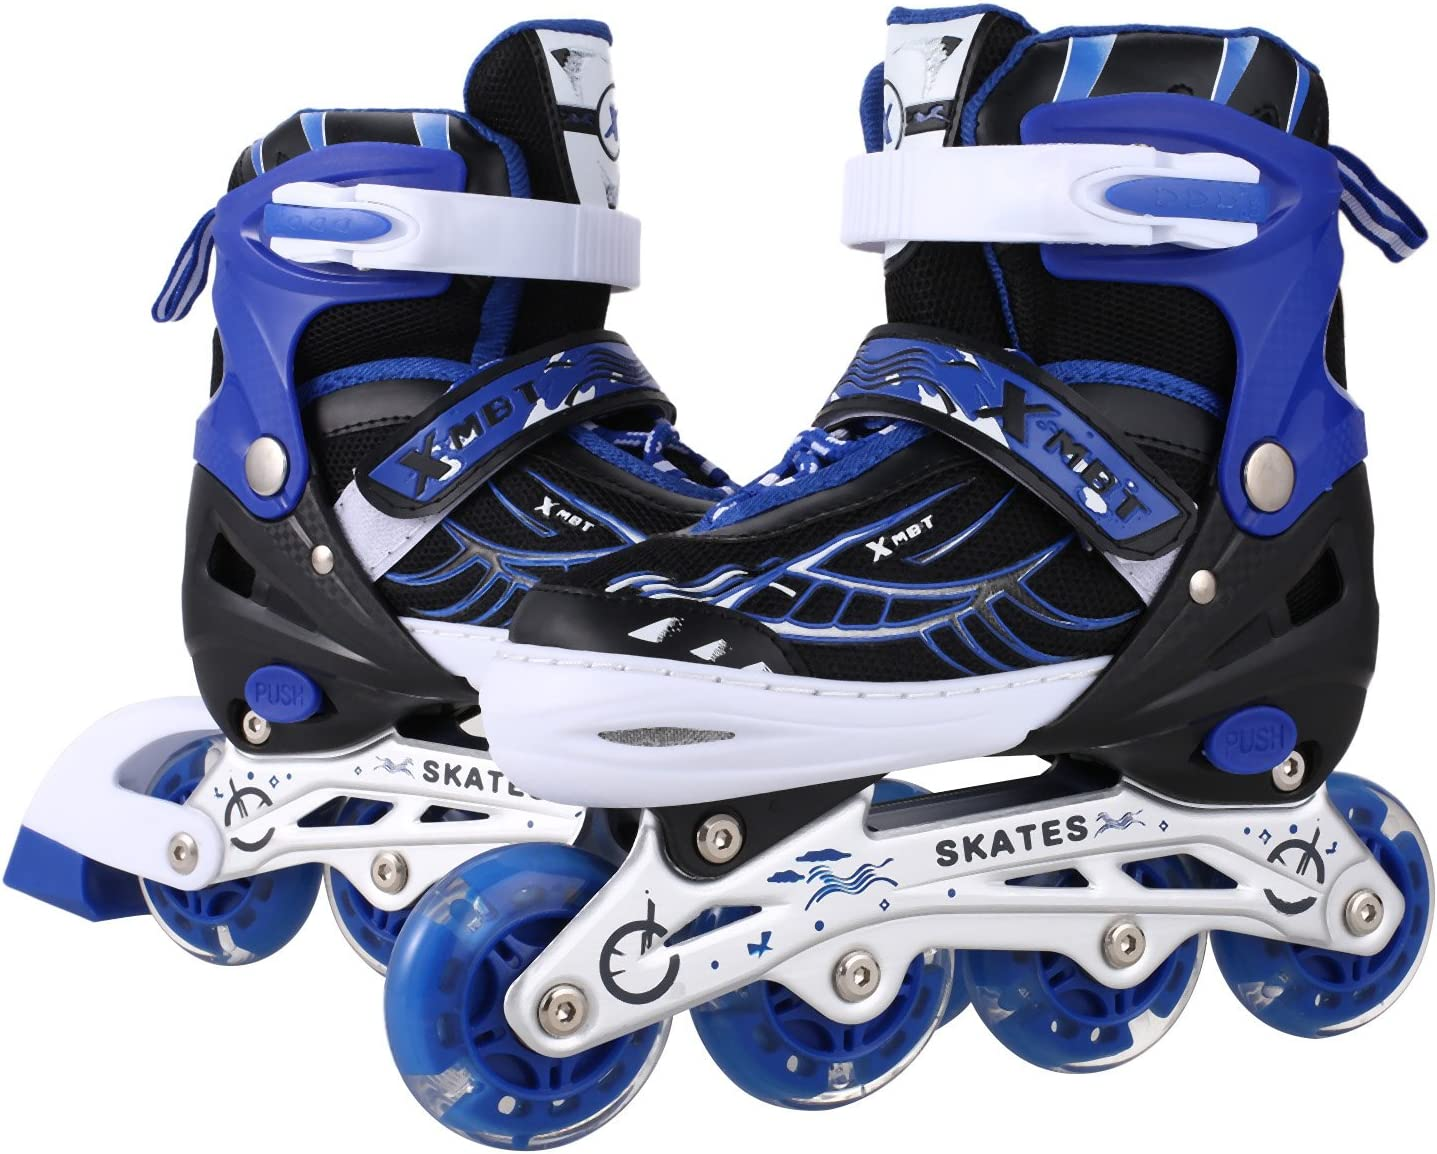 OUTCAMER Inline Skates with Light Up Wheels - 1